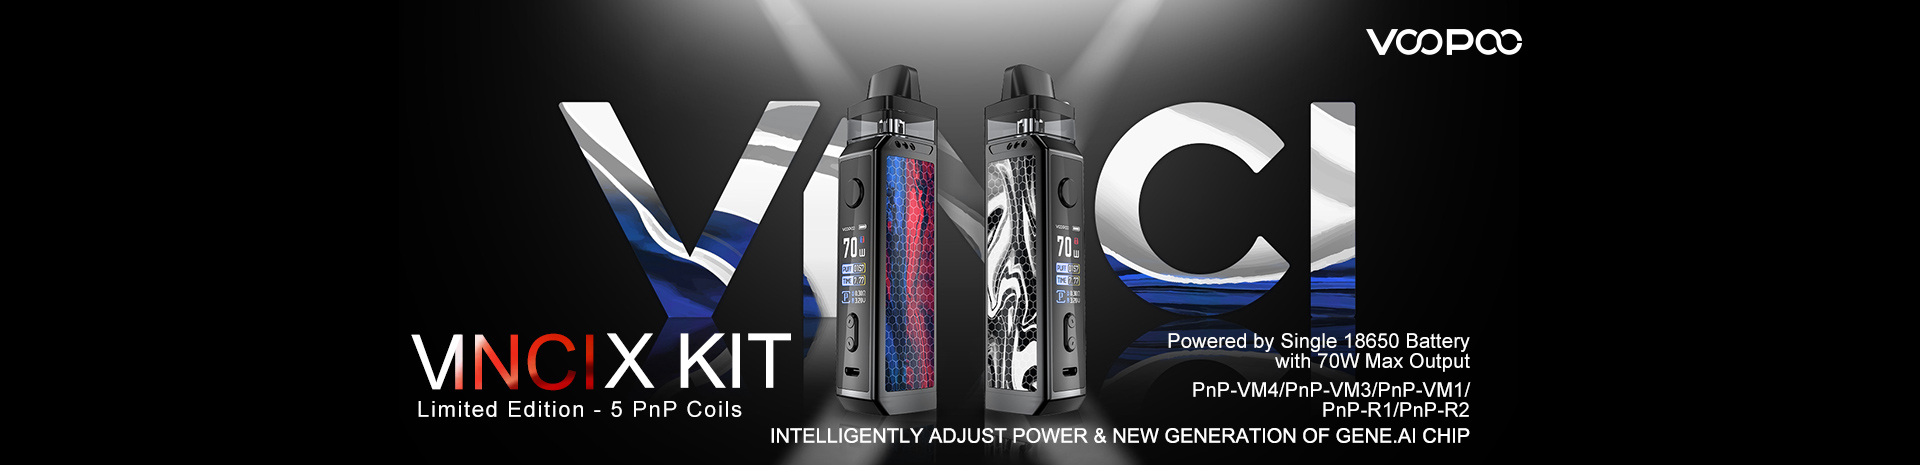 VOOPOO VINCI X Kit Limited Edition Banner